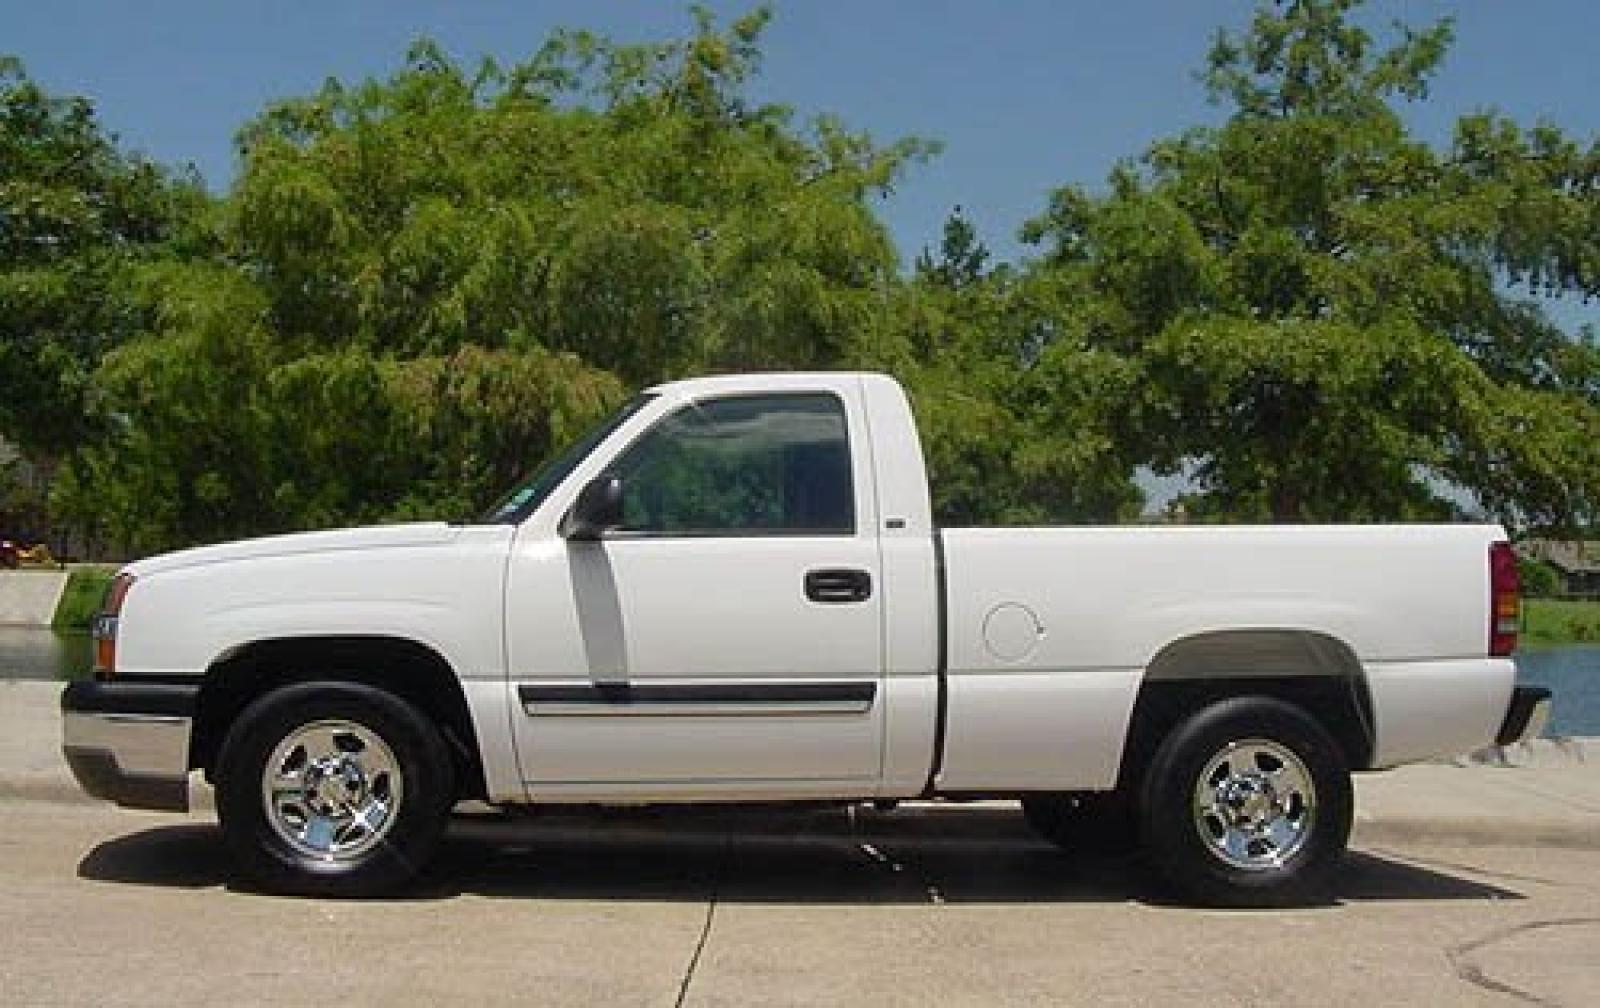 Chevrolet Silverado Regular Cab Pickup Ls S Oem on 2001 Dodge Dakota Bed